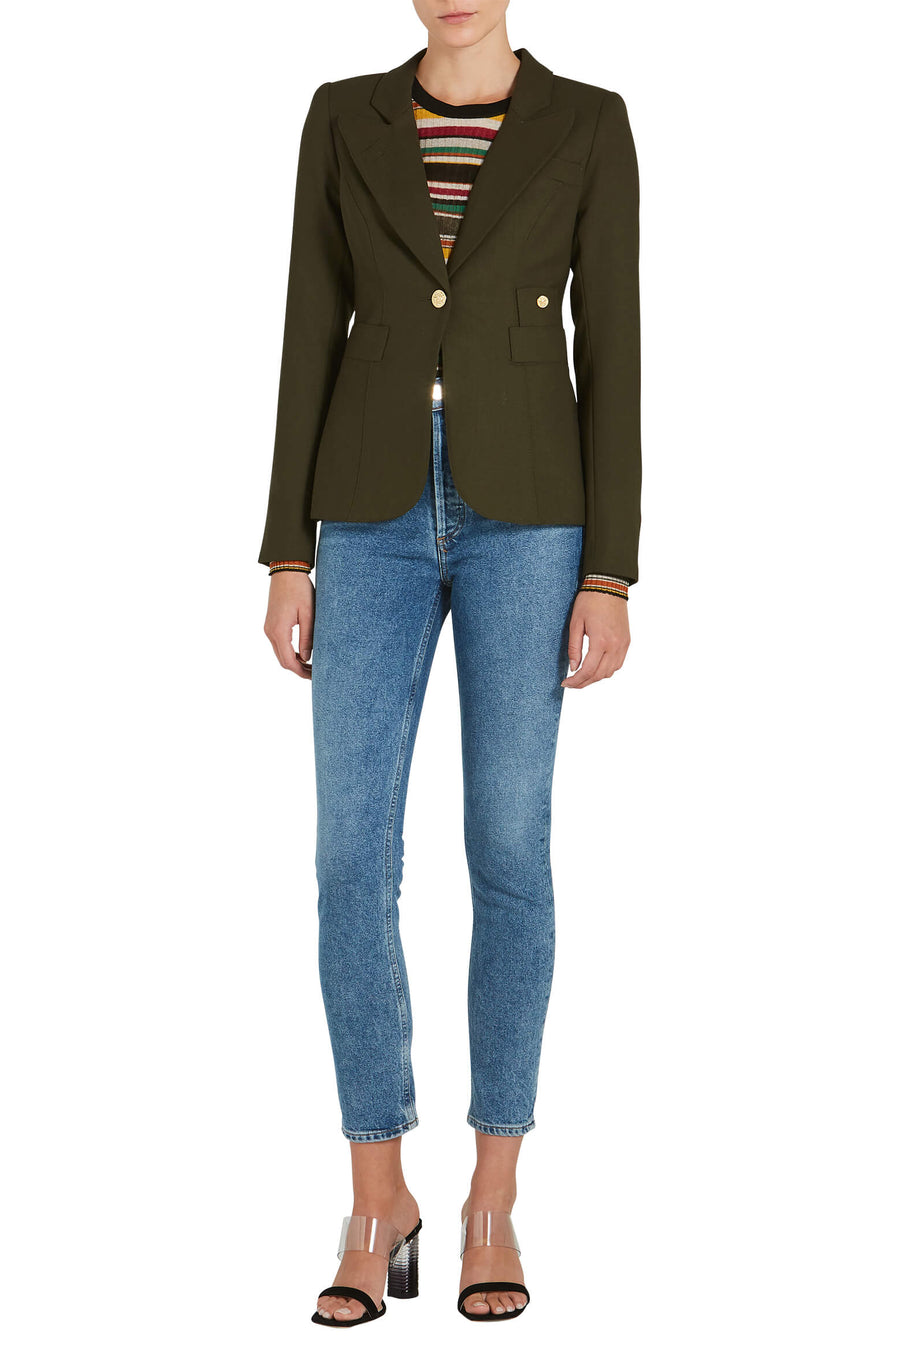 Smythe One Duchess Blazer from The New Trend